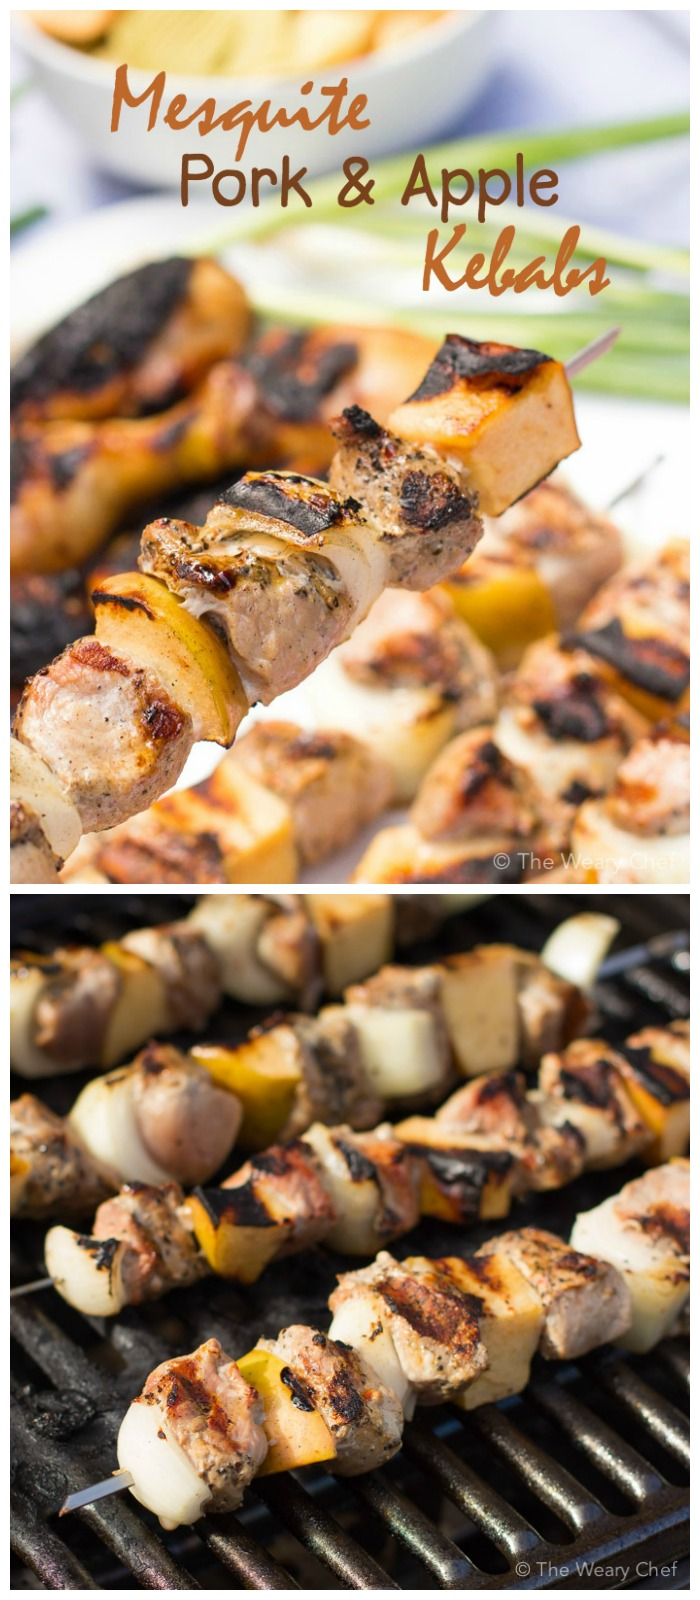 These mesquite grilled pork and apple kebabs are super easy to make thanks so pre-marinated pork.